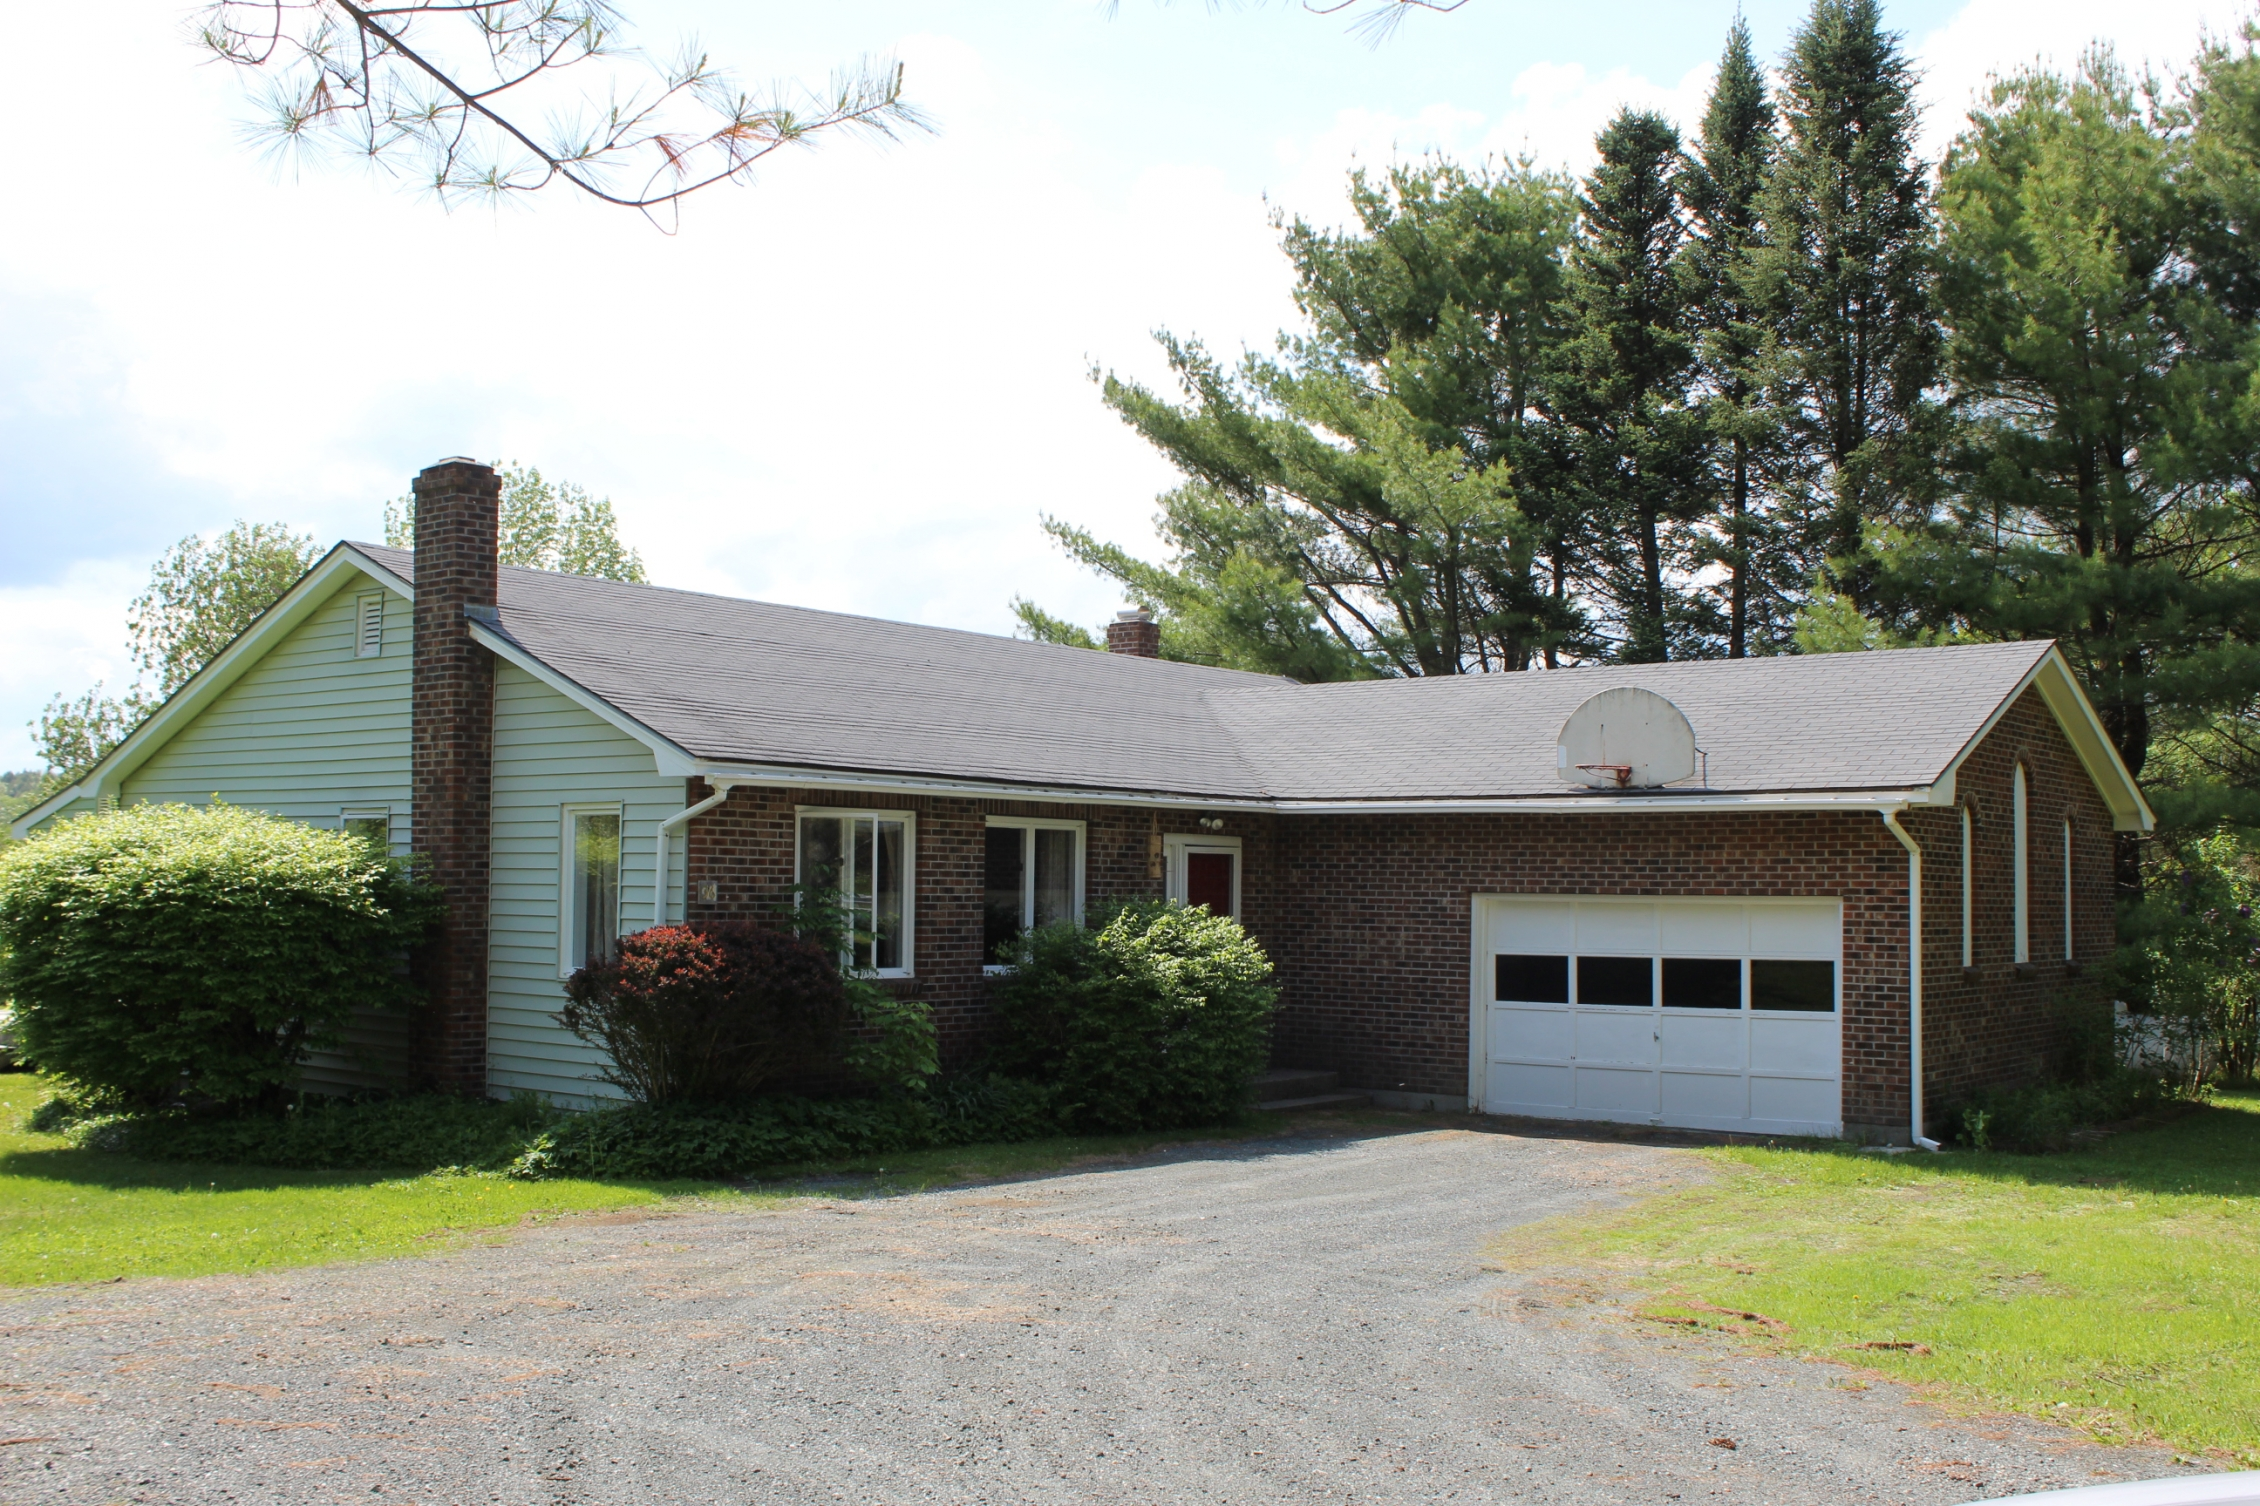 Single Family Home for Sale at 36 Blueberry Hill Drive, Lebanon Lebanon, New Hampshire 03766 United States